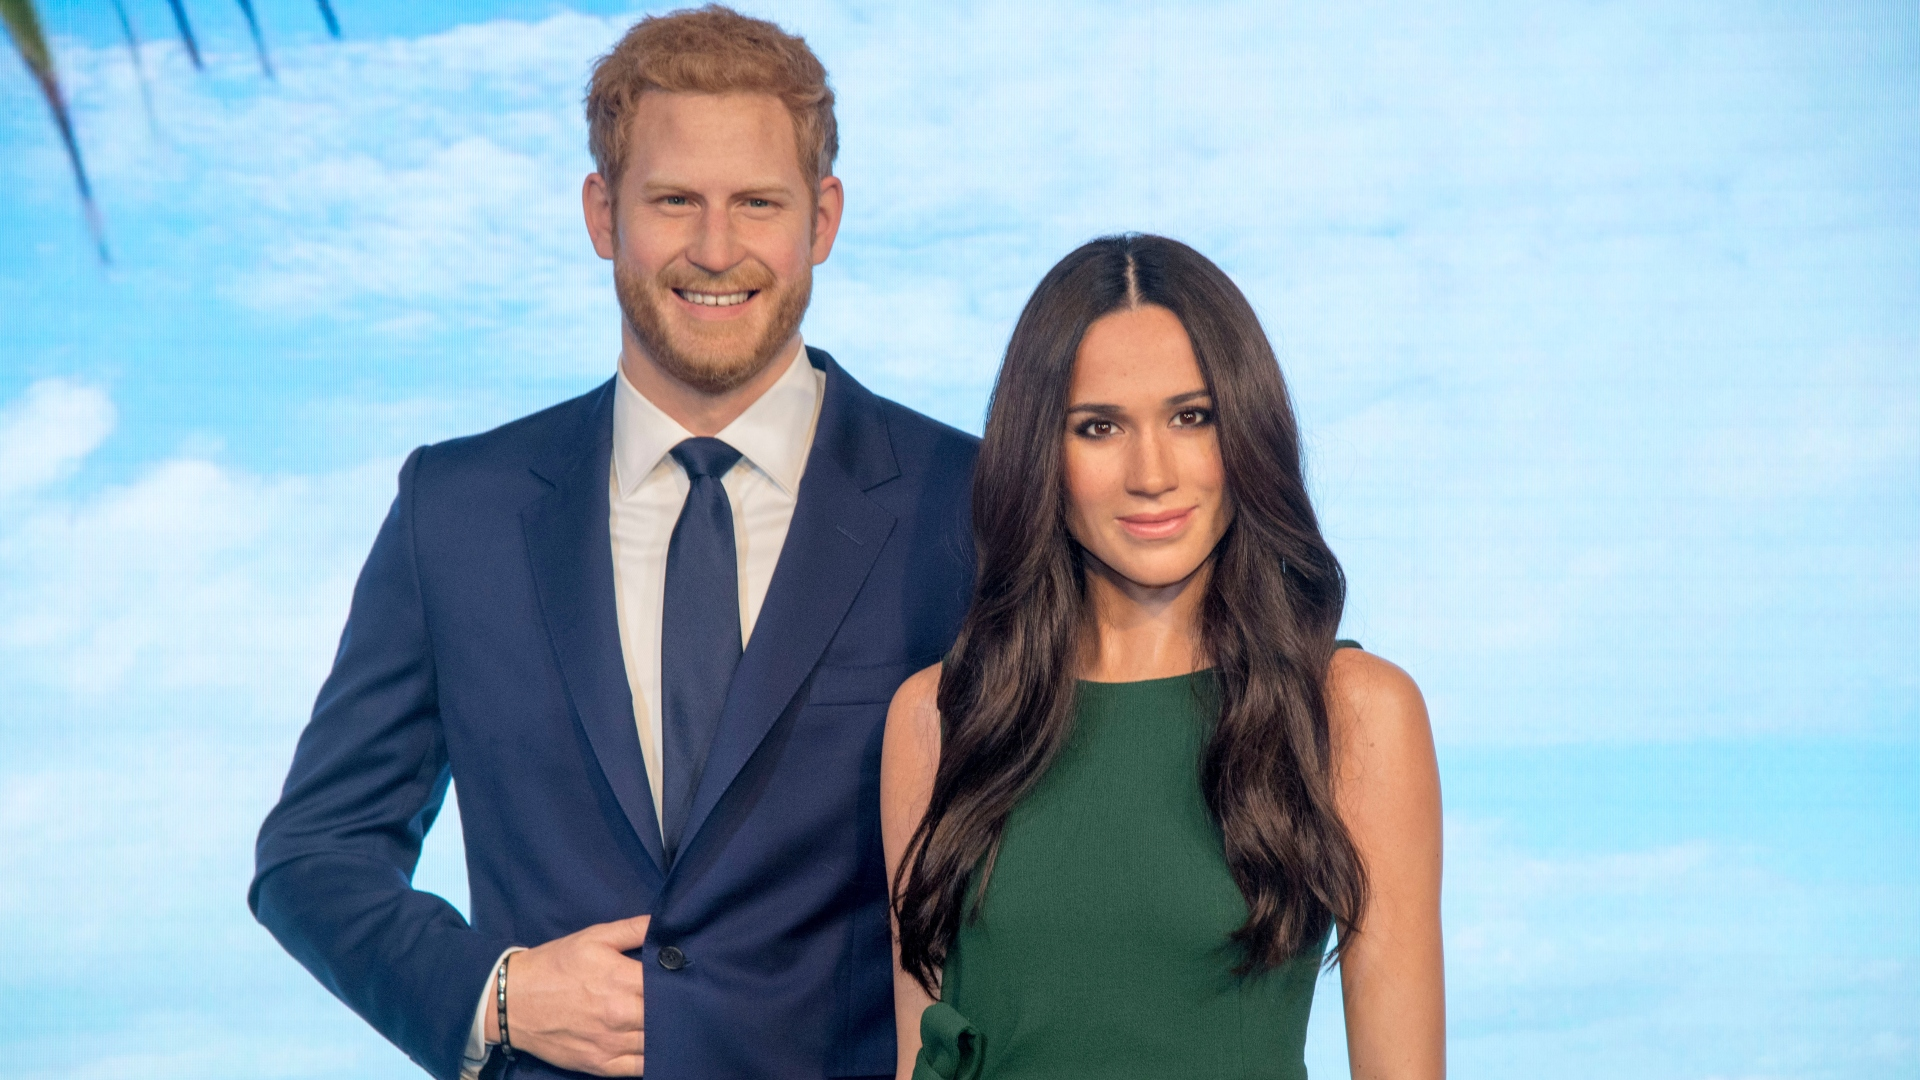 meghan-markle-and-prince-harrys-wax-figures-moved-from-the-royal-family-section-to-the-hollywood-display